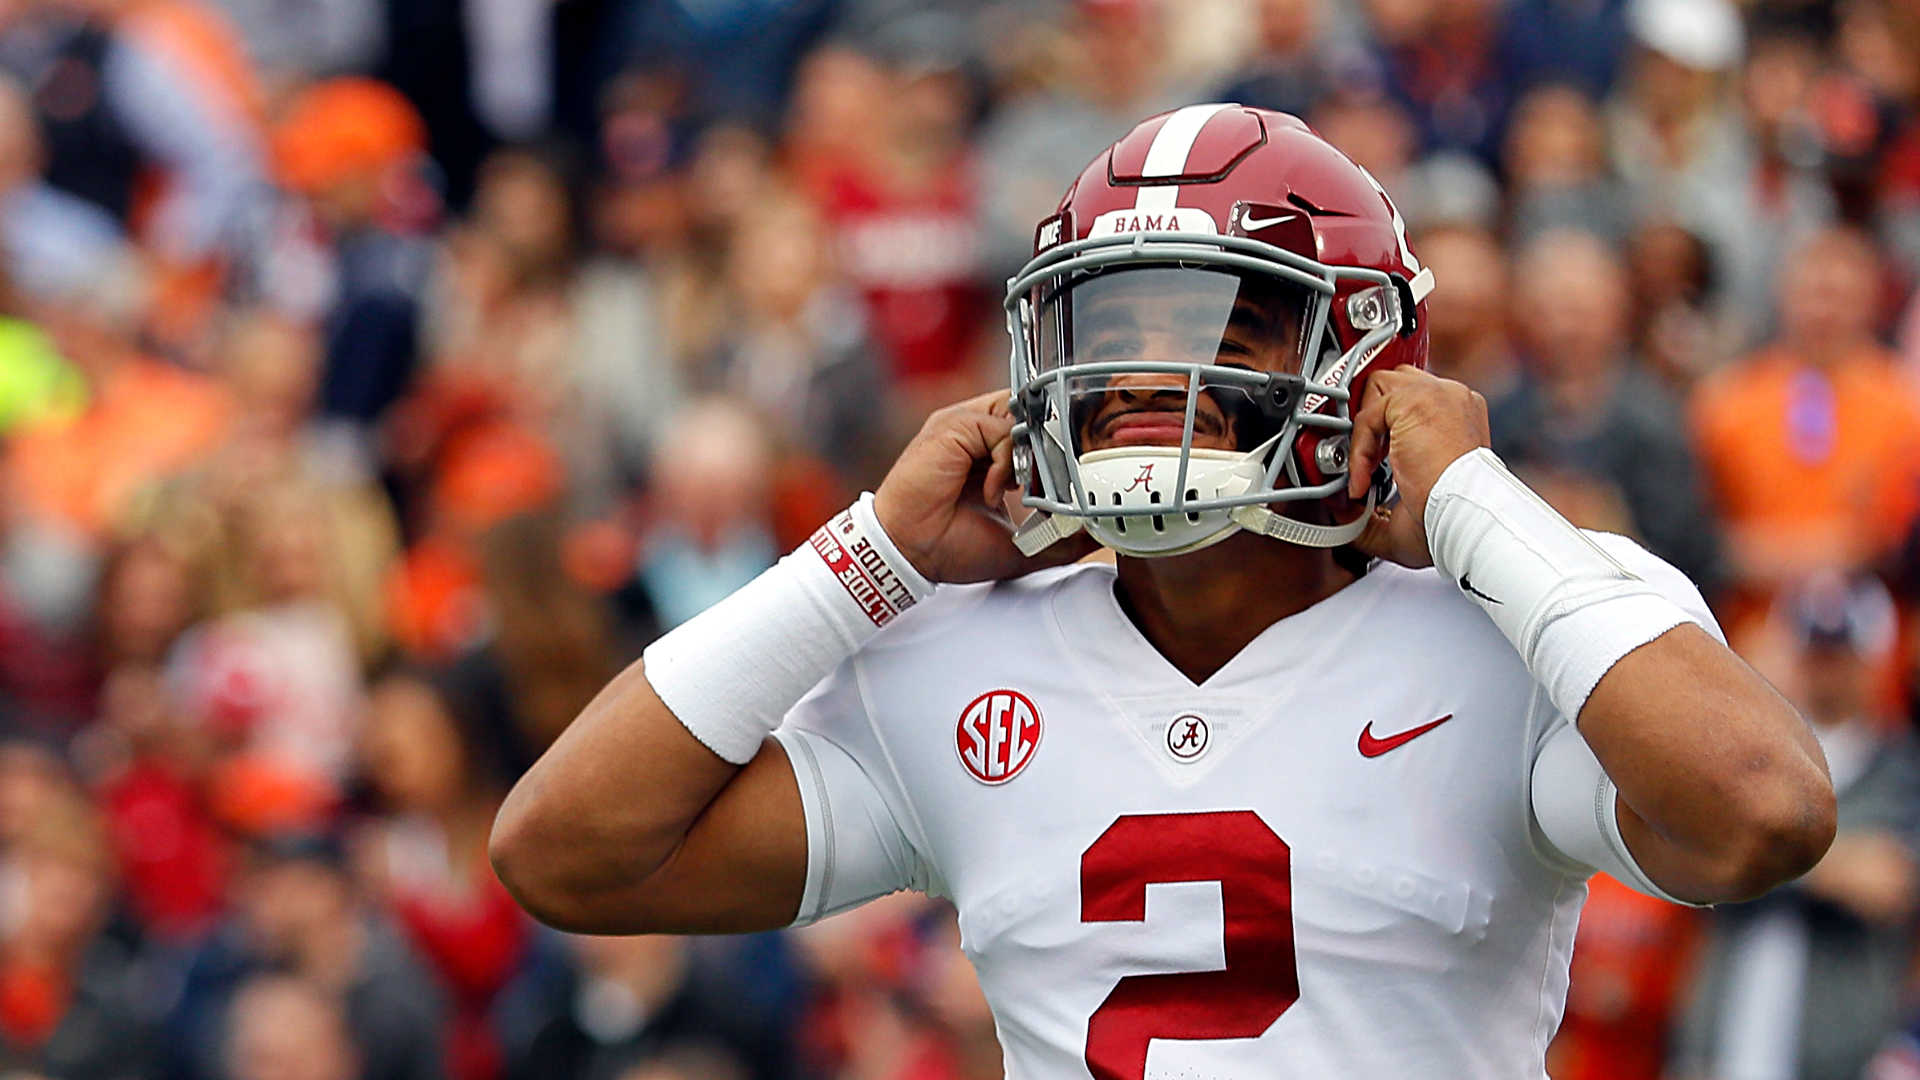 Jalen Hurts trolls Auburn when paying off bet with Charles Barkley